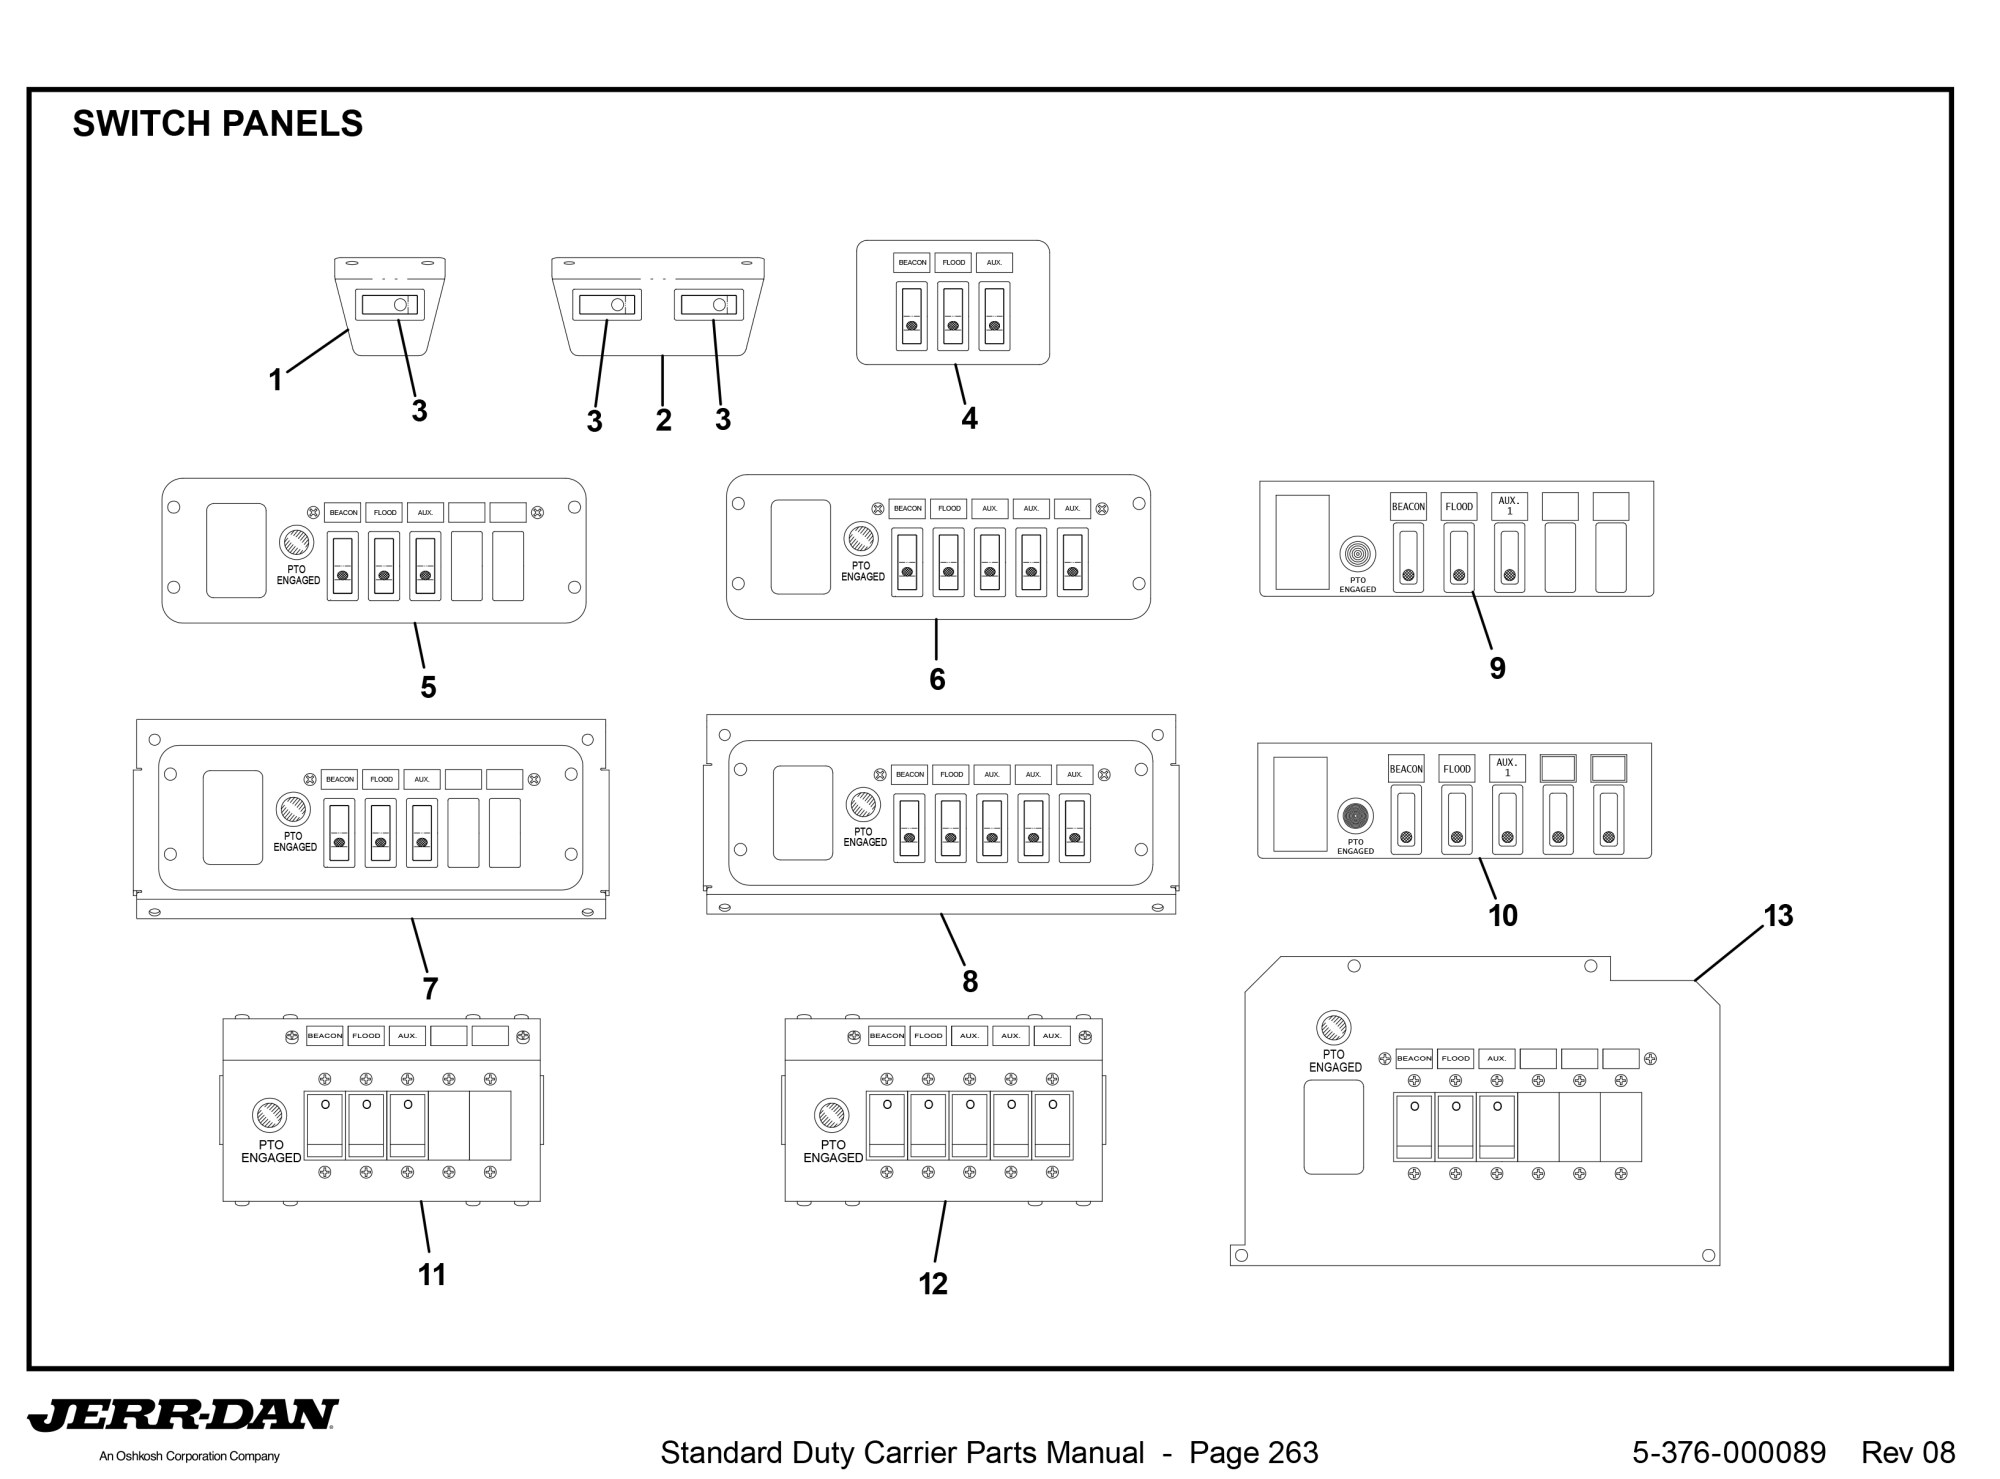 hight resolution of jerr dan control relay wiring diagram wiring diagrams hydraulic cylinder parts diagram jerr dan switch jerr